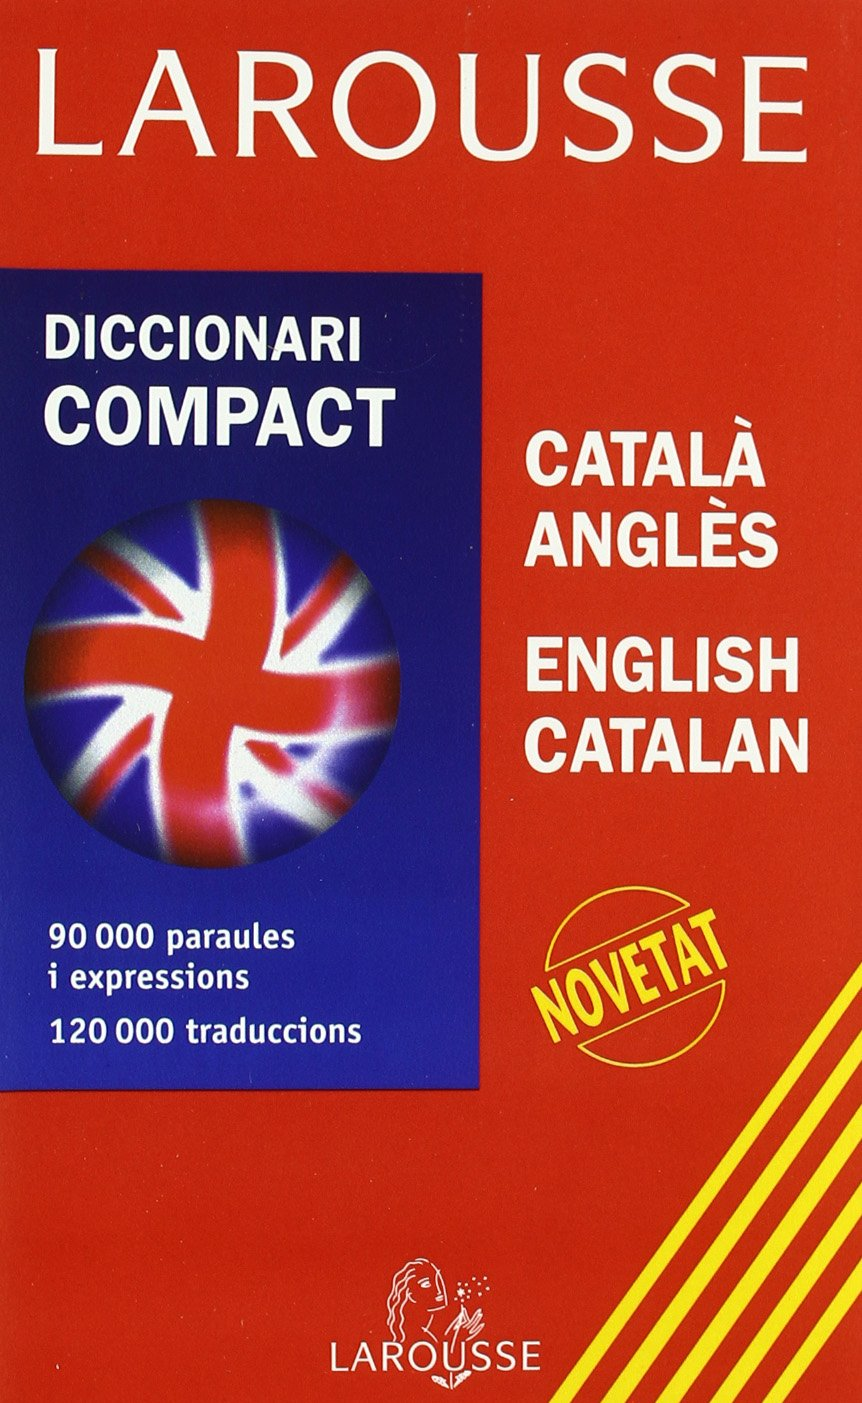 Larousse Diccionari Compact Catala Angles - English Catalan/ Larousse  Compact Catalan - English Dictionary (Catalan and English Edition)  Paperback – June 30 ...